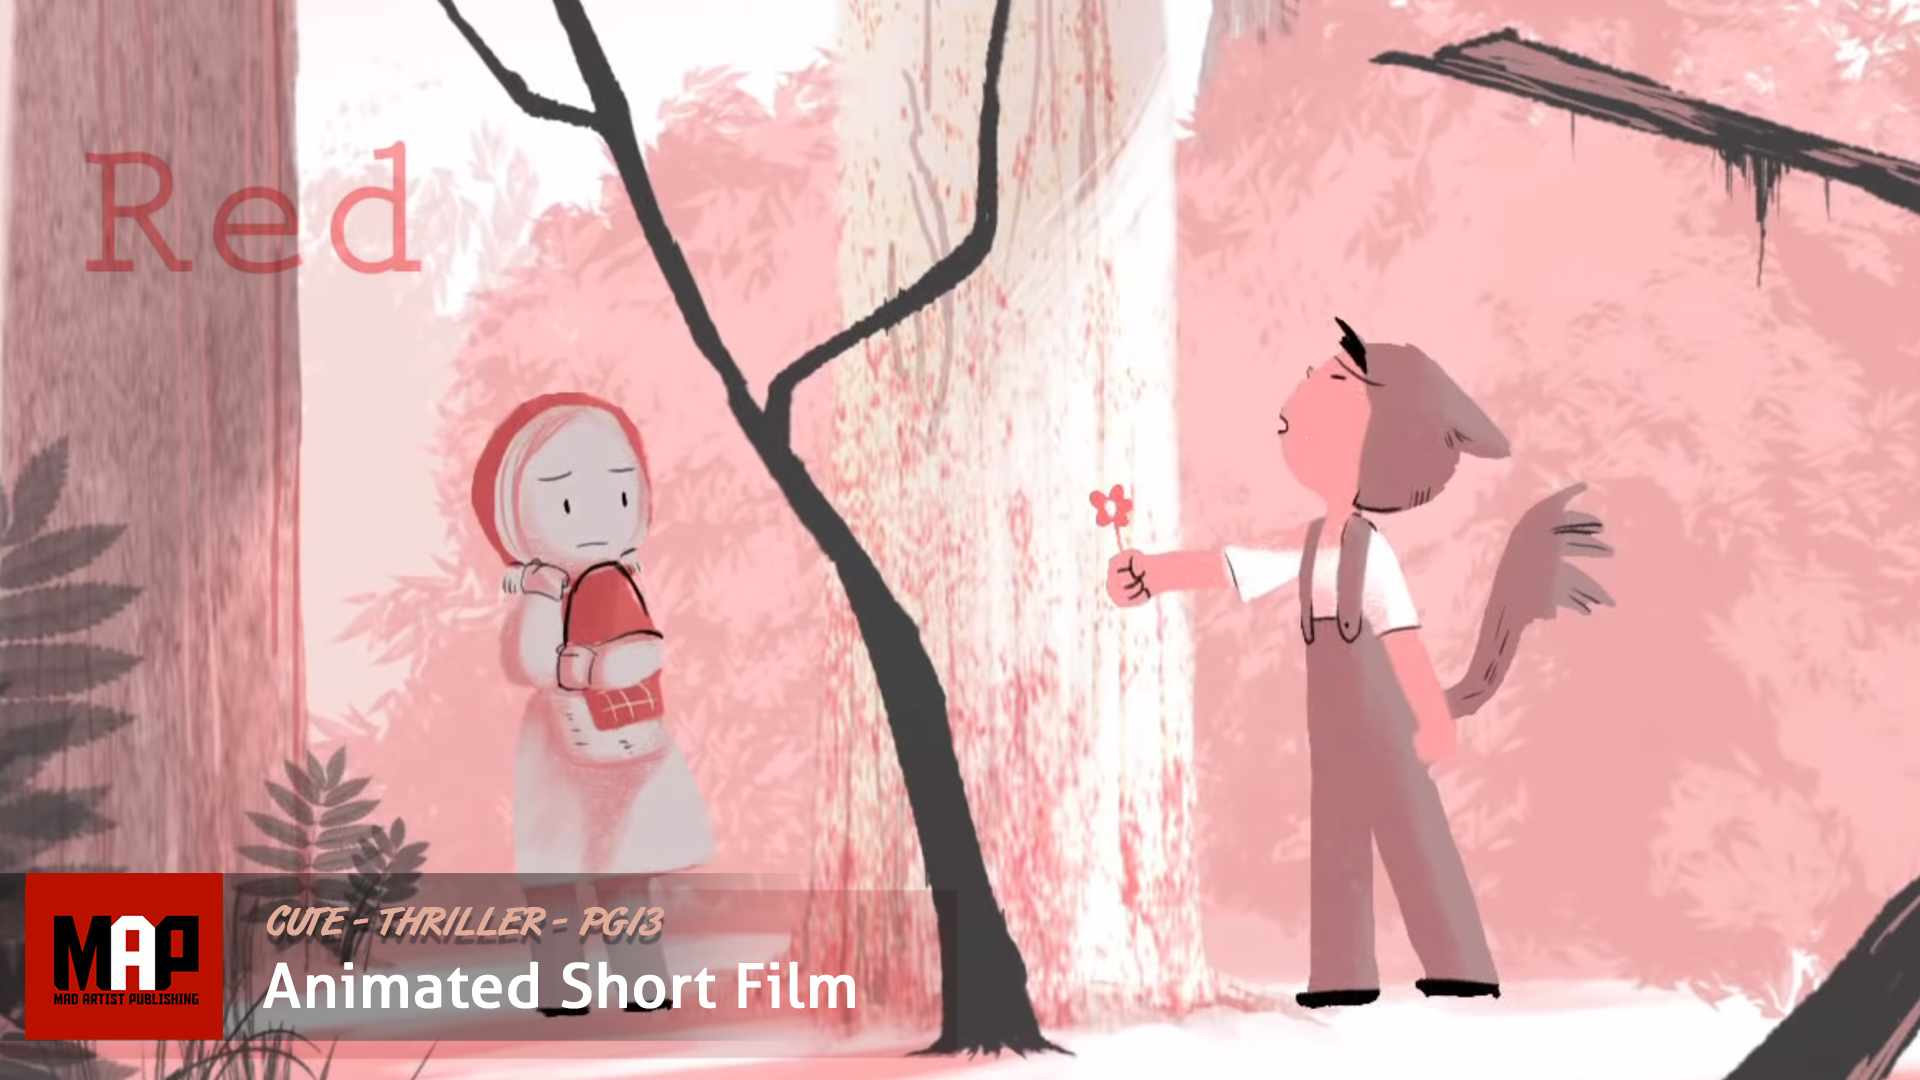 Cute Romantic Animated Thriller ** RED ** Short Film Animation by Hyunjoo Song & CalArts Institute